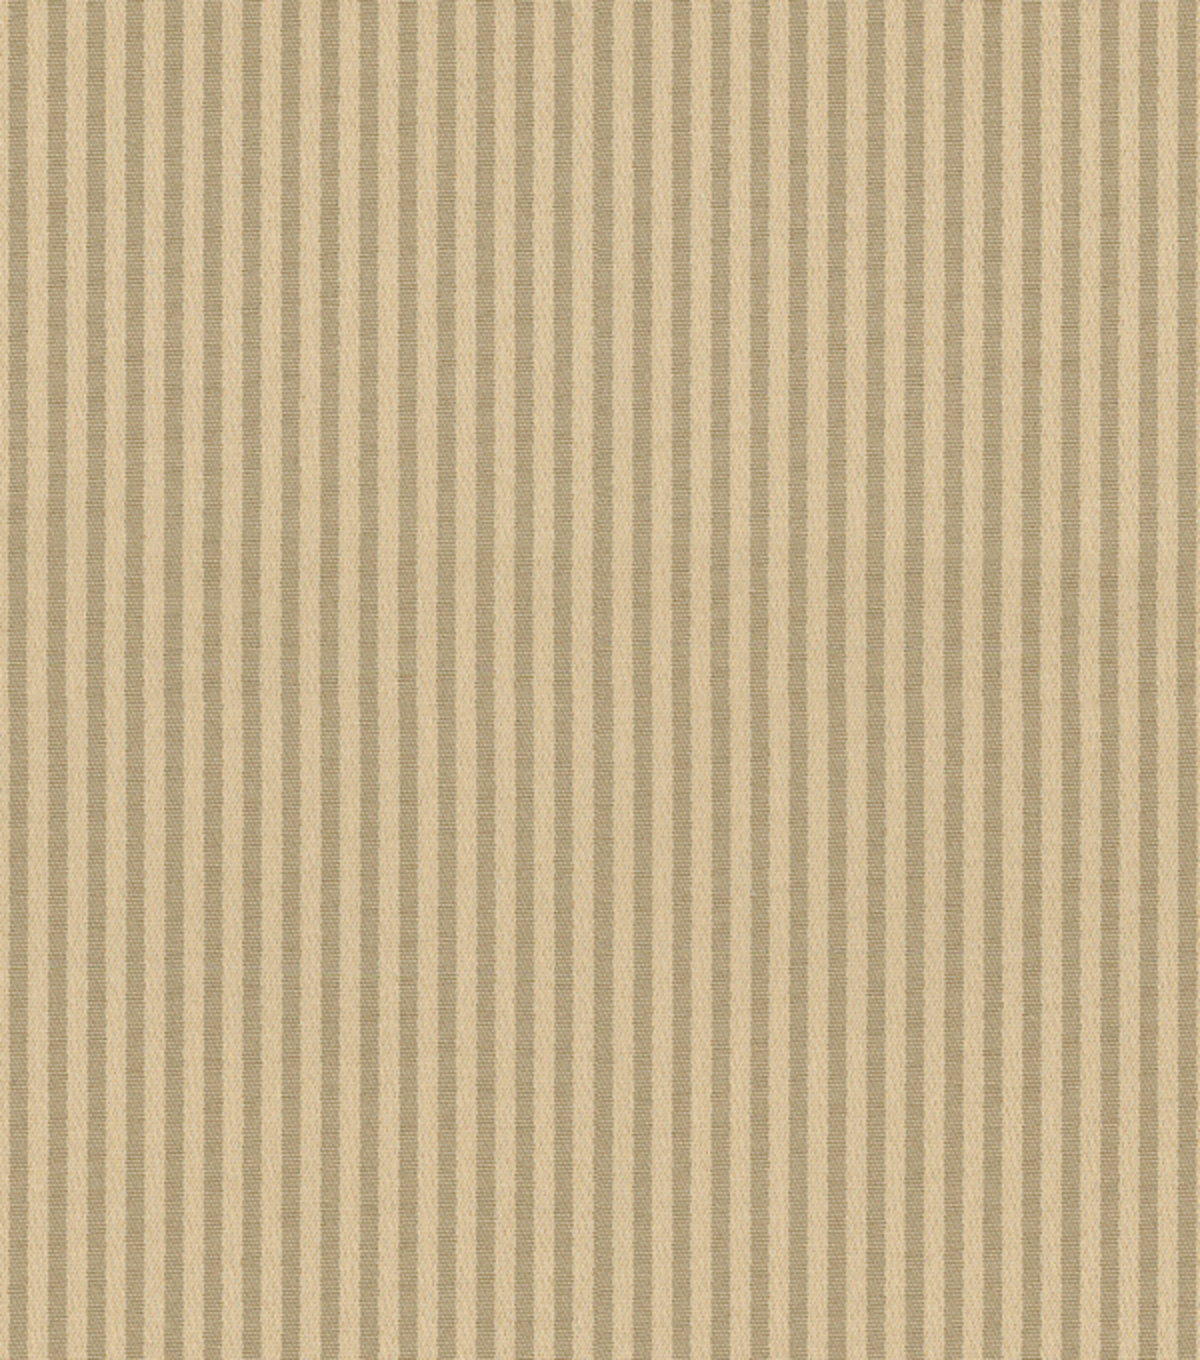 Home Decor 8\u0022x8\u0022 Fabric Swatch-Covington Fine Stripes